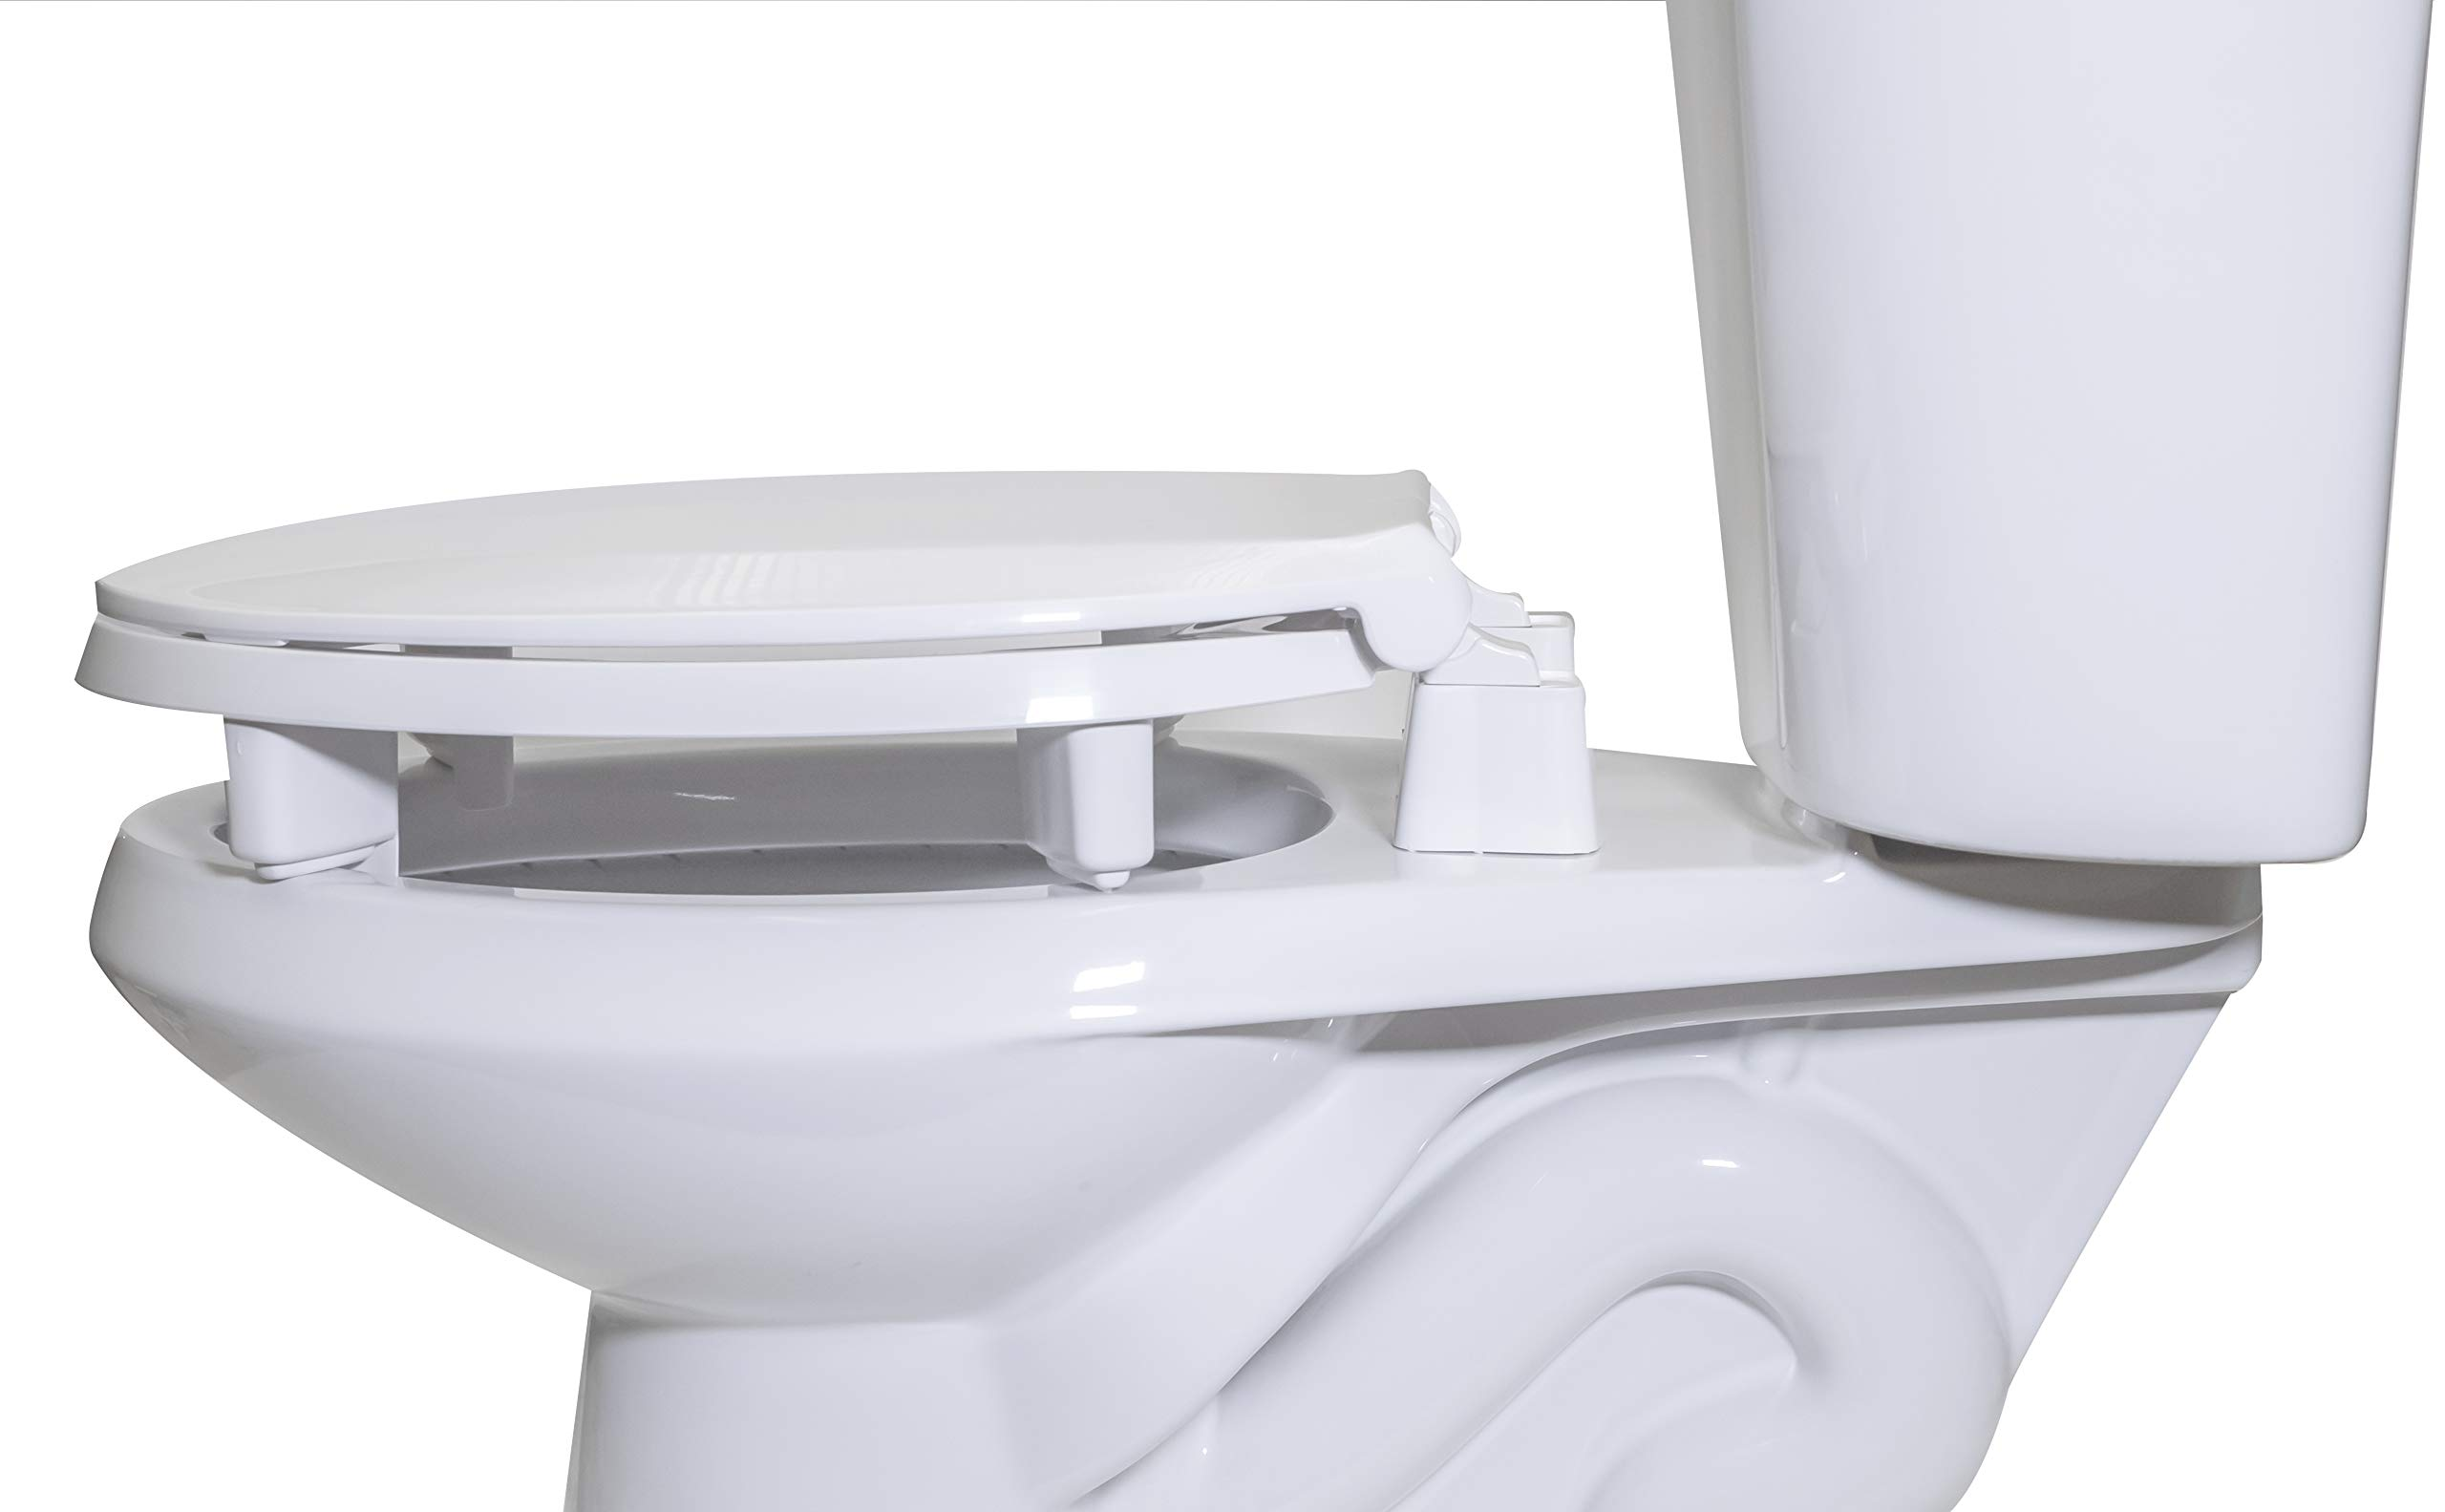 Centoco 3L800STS-001 Elongated 3'' Lift, Raised Plastic Toilet Seat, Closed Front with Cover, ADA Compliant Handicap Medical Assistance Seat, White by Centoco (Image #5)